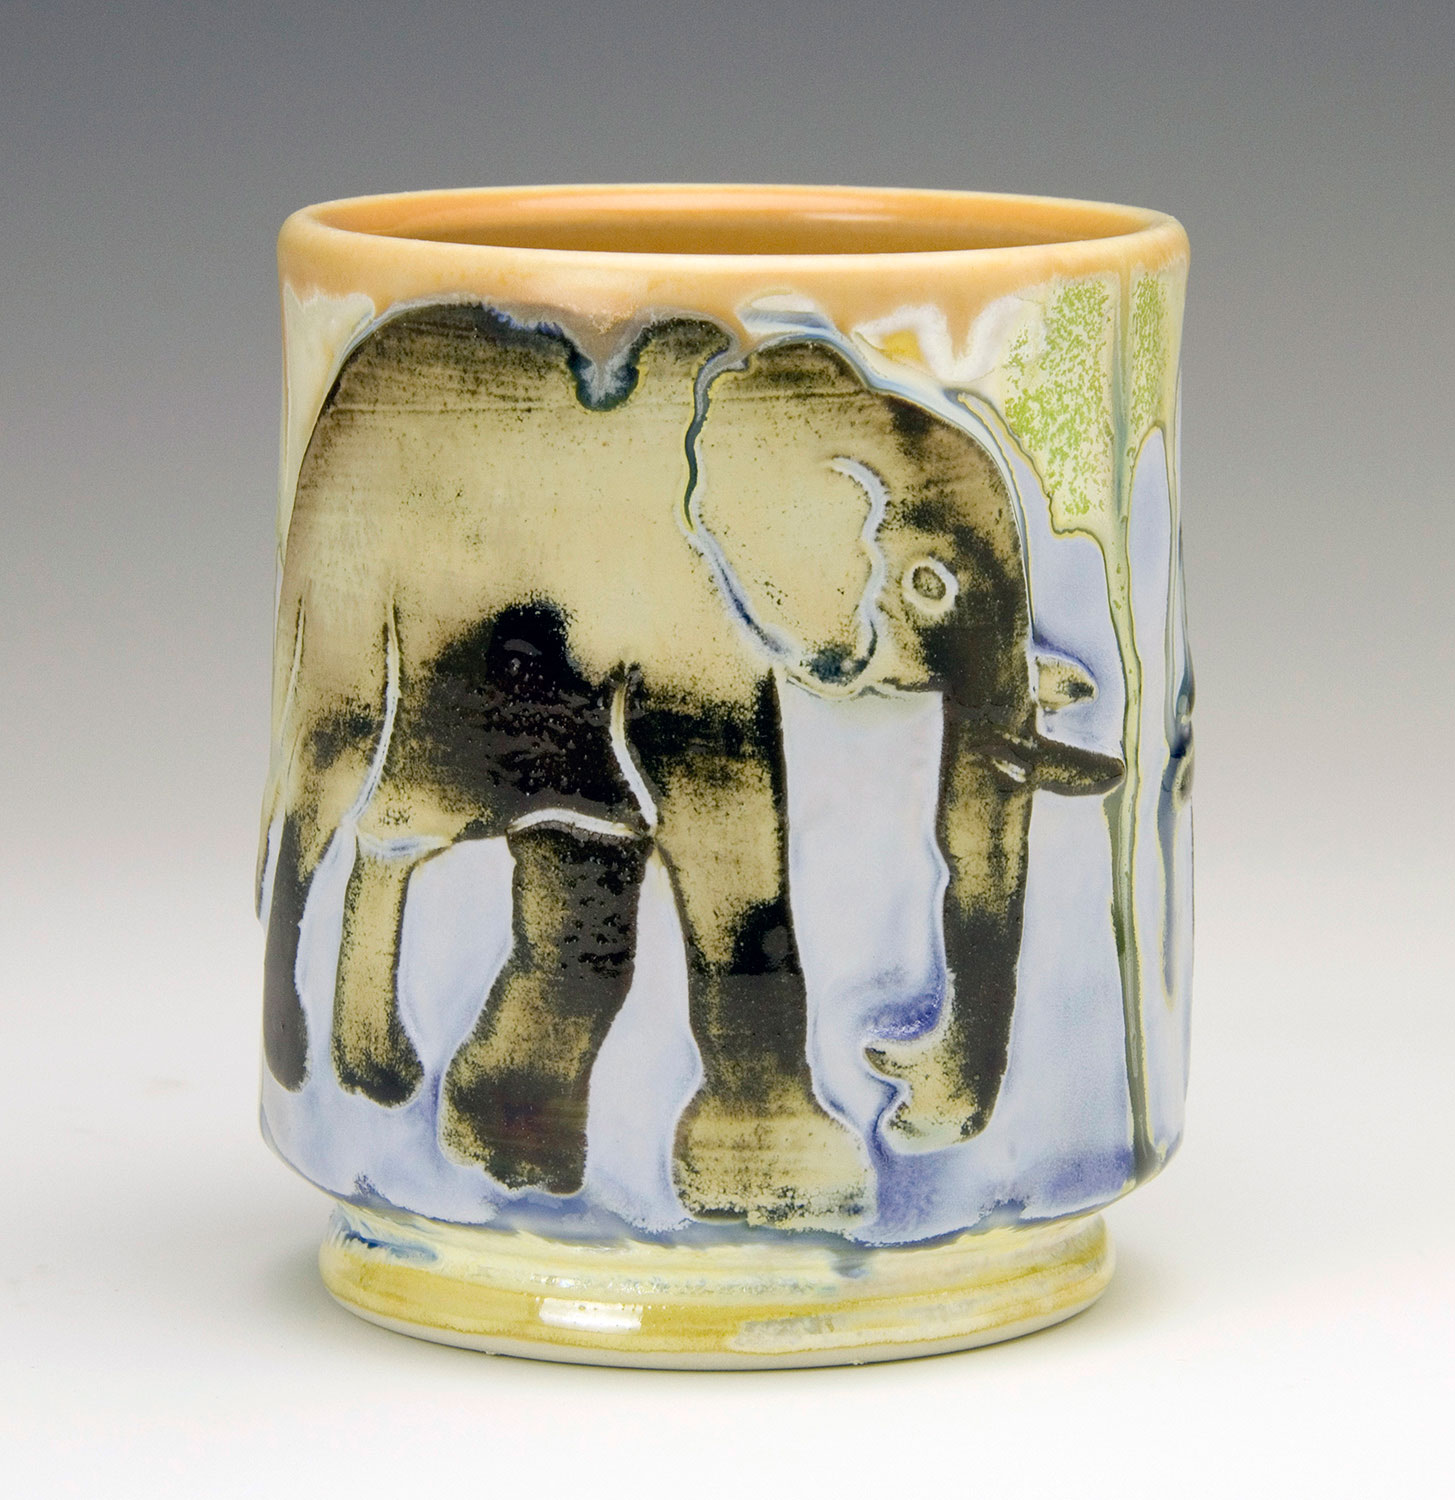 Elephant-Cup-Samantha-Henneke-Seagrove-North-Carolina.jpg